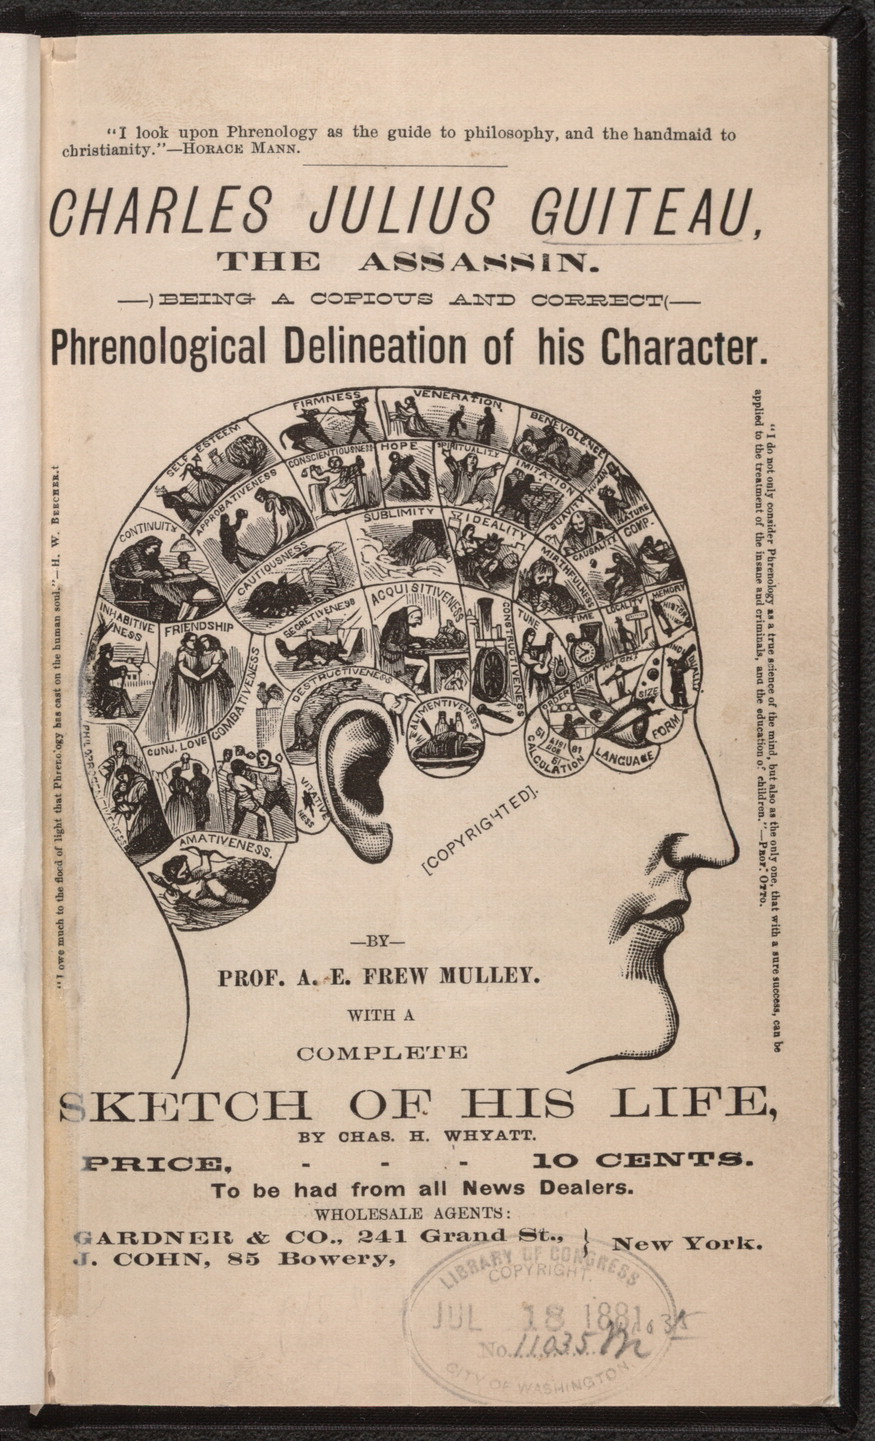 Charles Julius Guiteau, the assassin. Being a copious and correct phrenological delineation of his character